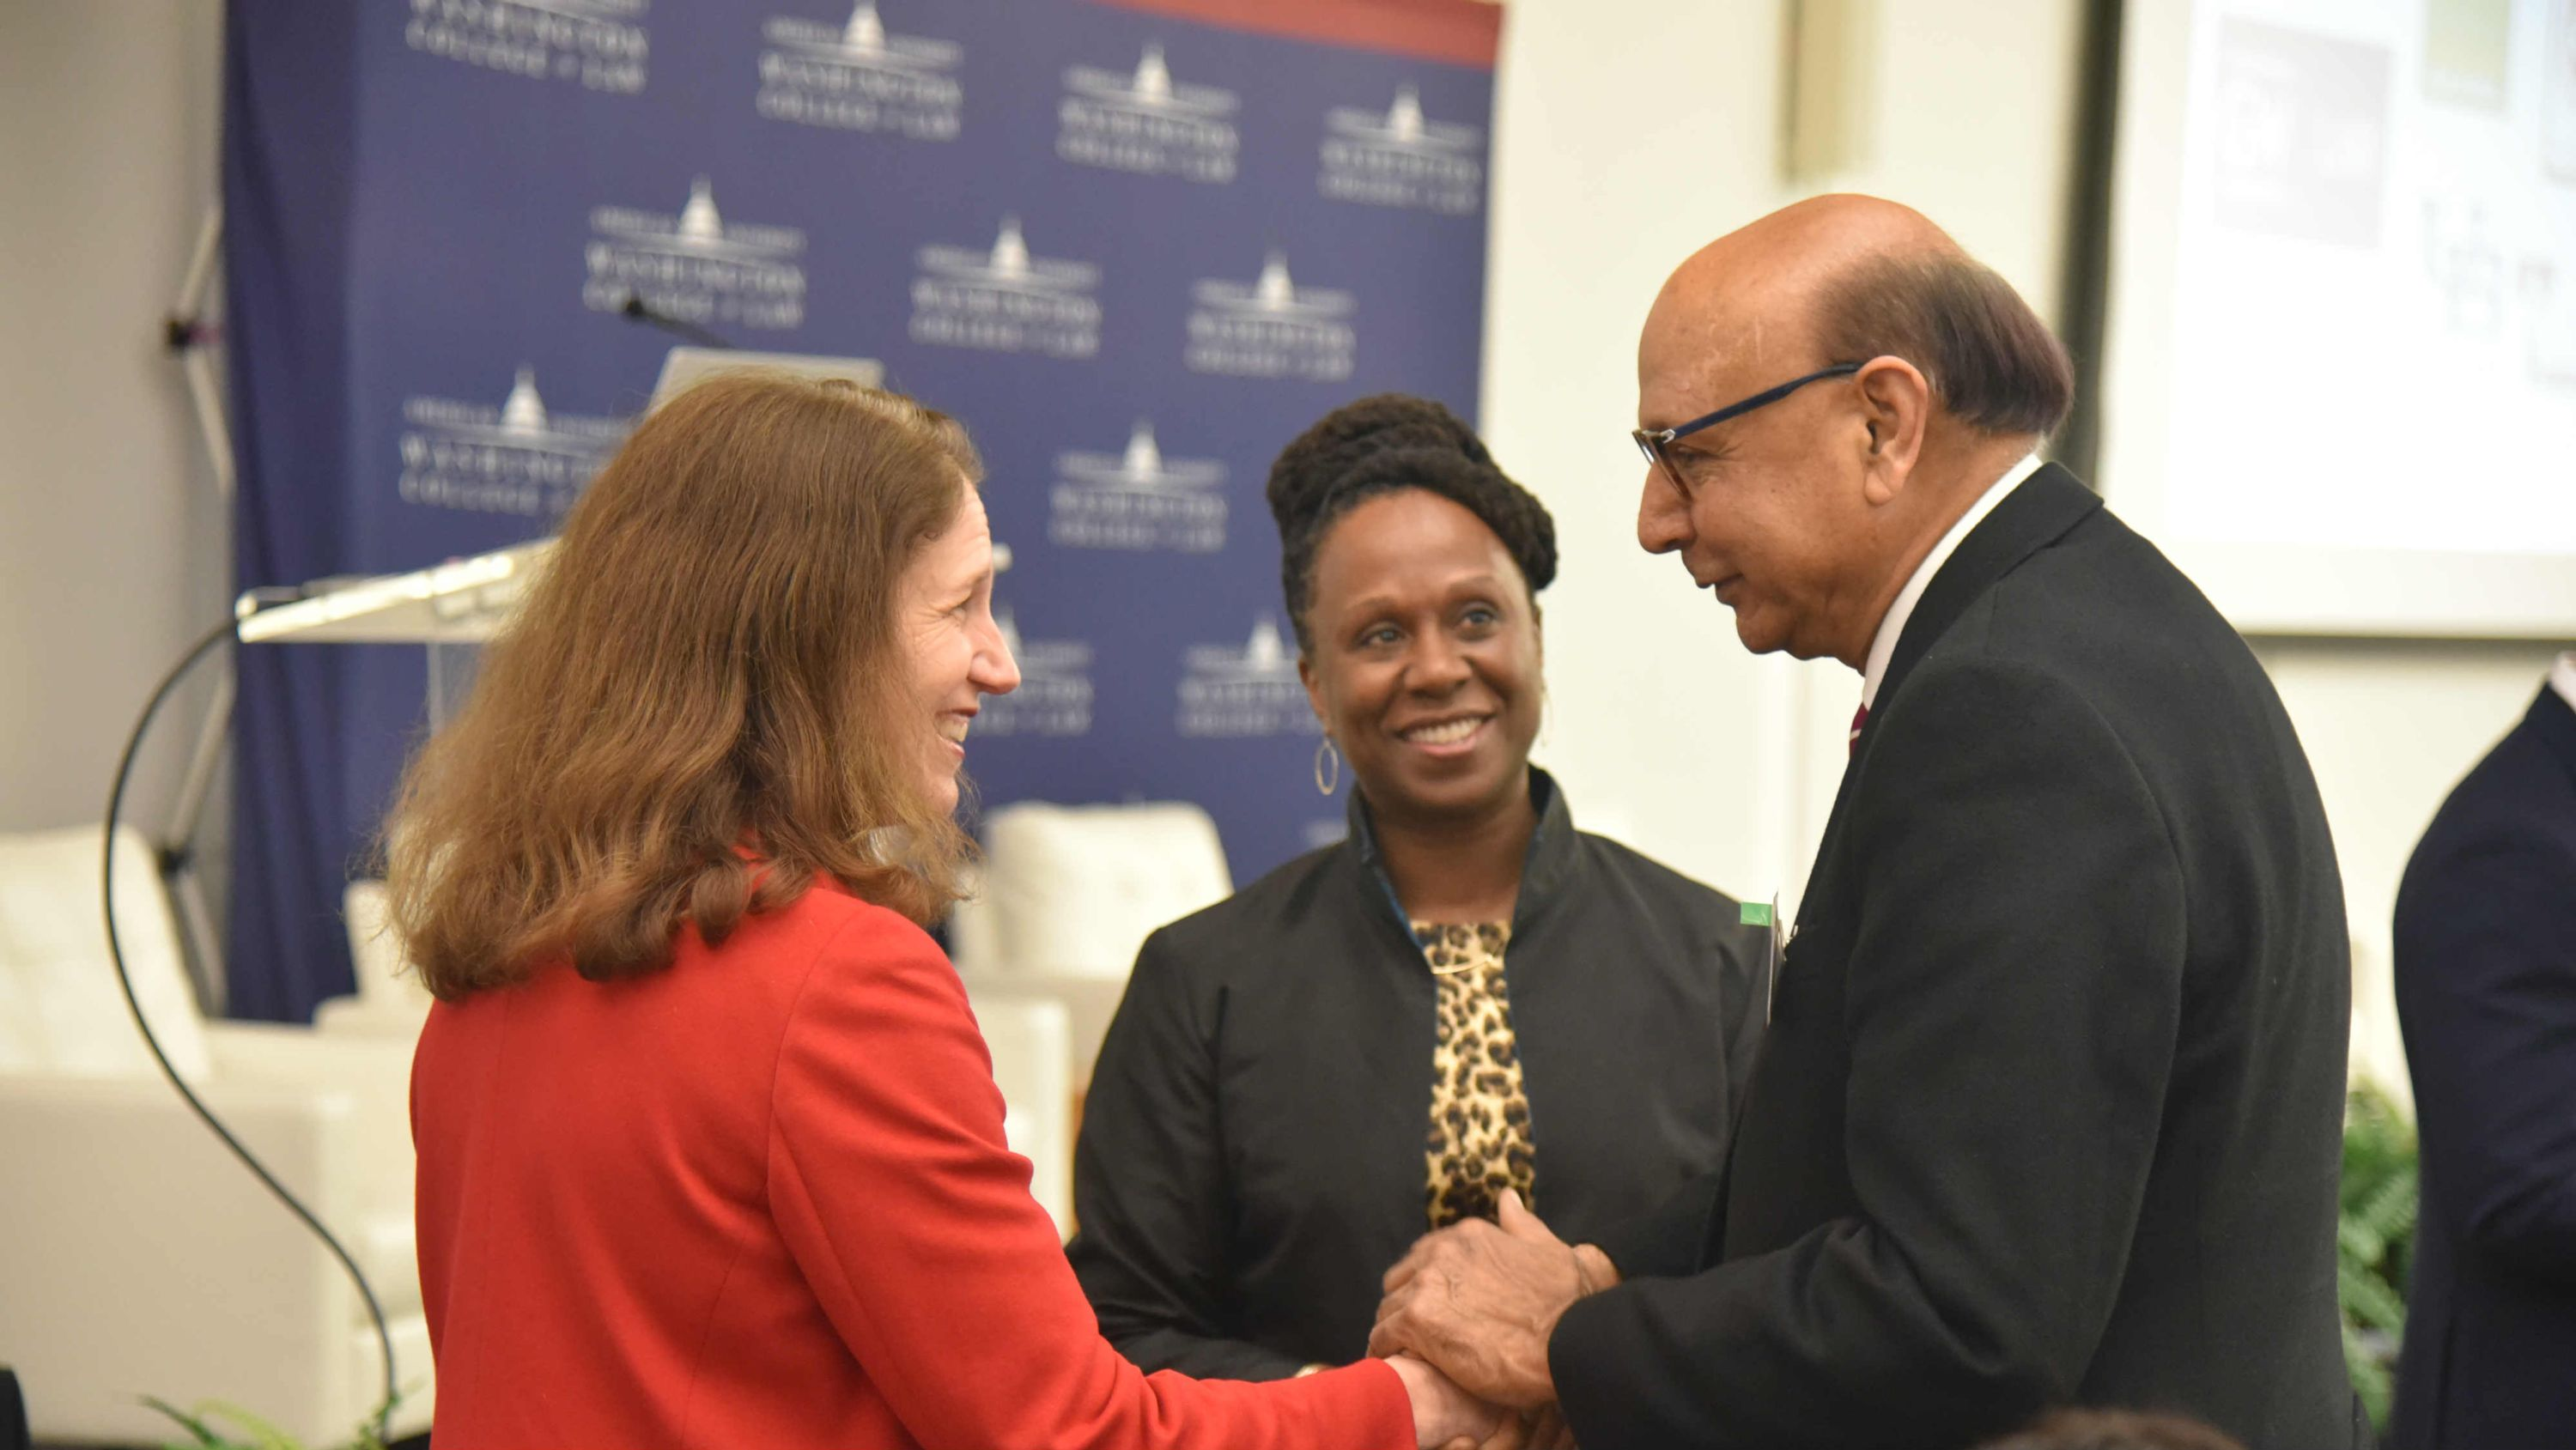 American University President Sylvia Mathews Burwell and AUWCL Dean Camille Nelson Greet lawyer and Gold Star Father Khizr Khan.